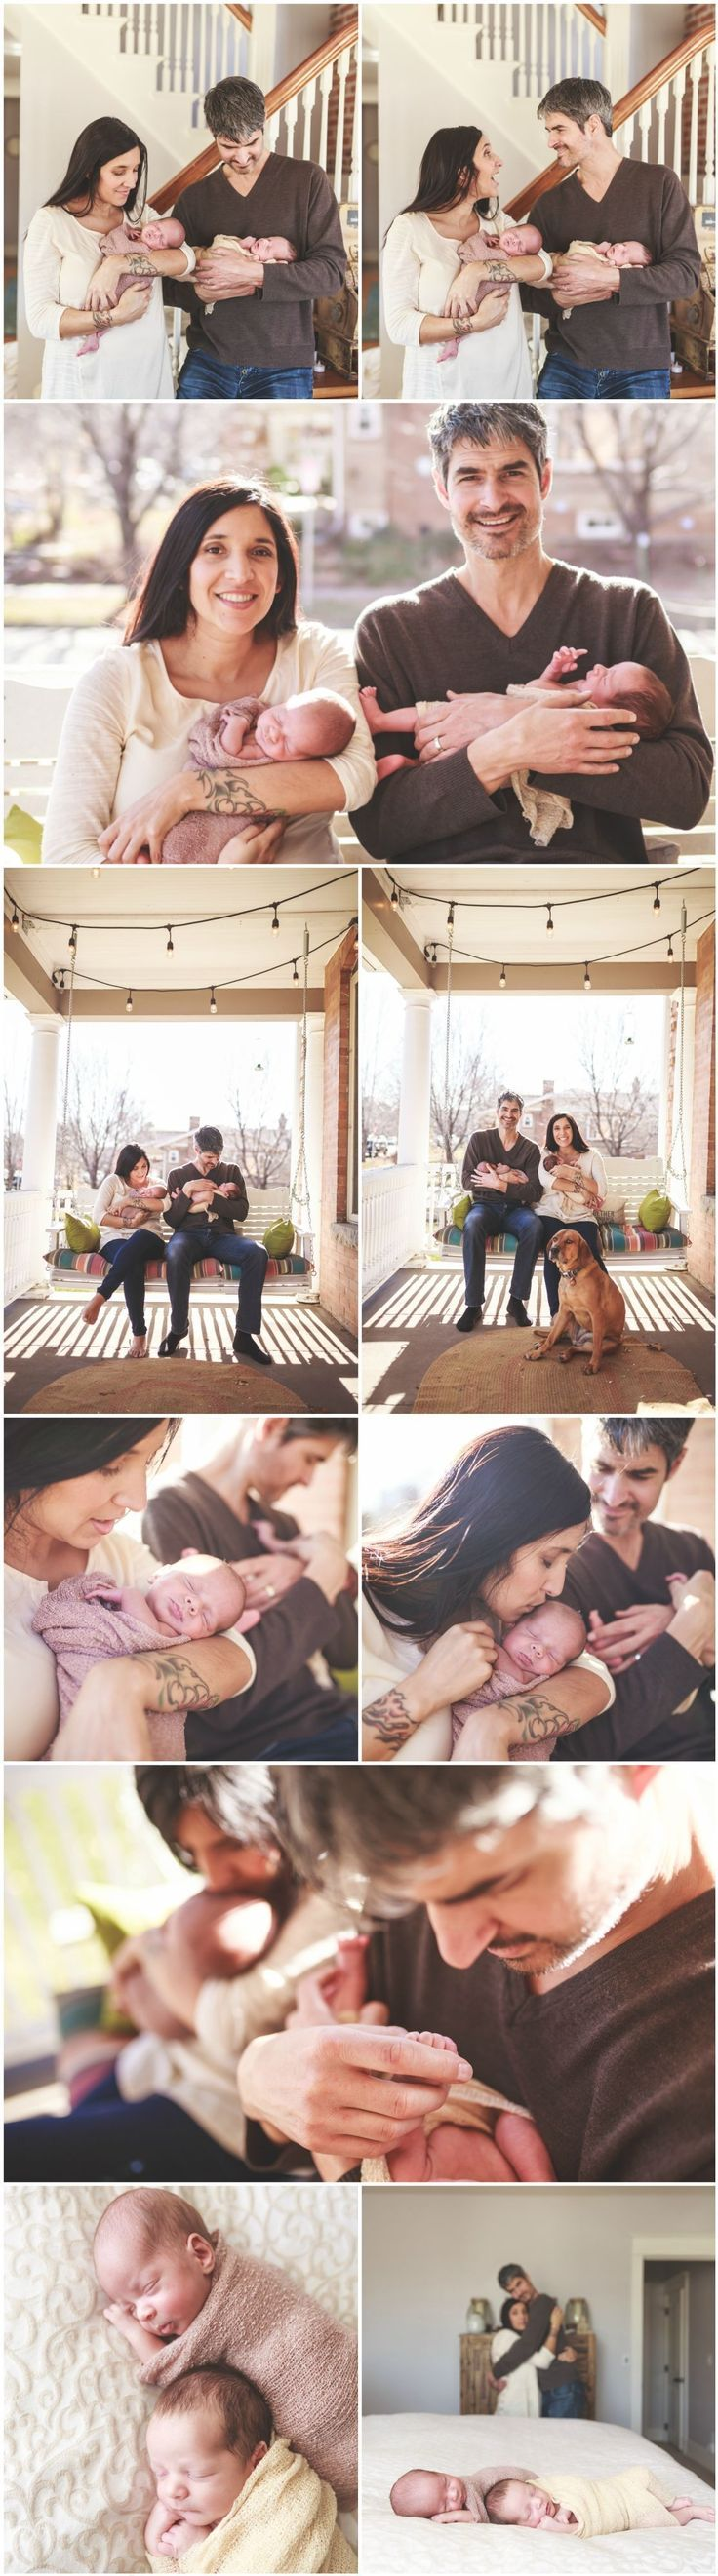 Cute Twin Newborn Photography Ideas and Inspiration | Newborn Poses | Denver Newborn Photographers | Newborn Baby Twins and Family Portraits #familyphotography #newbornphotography